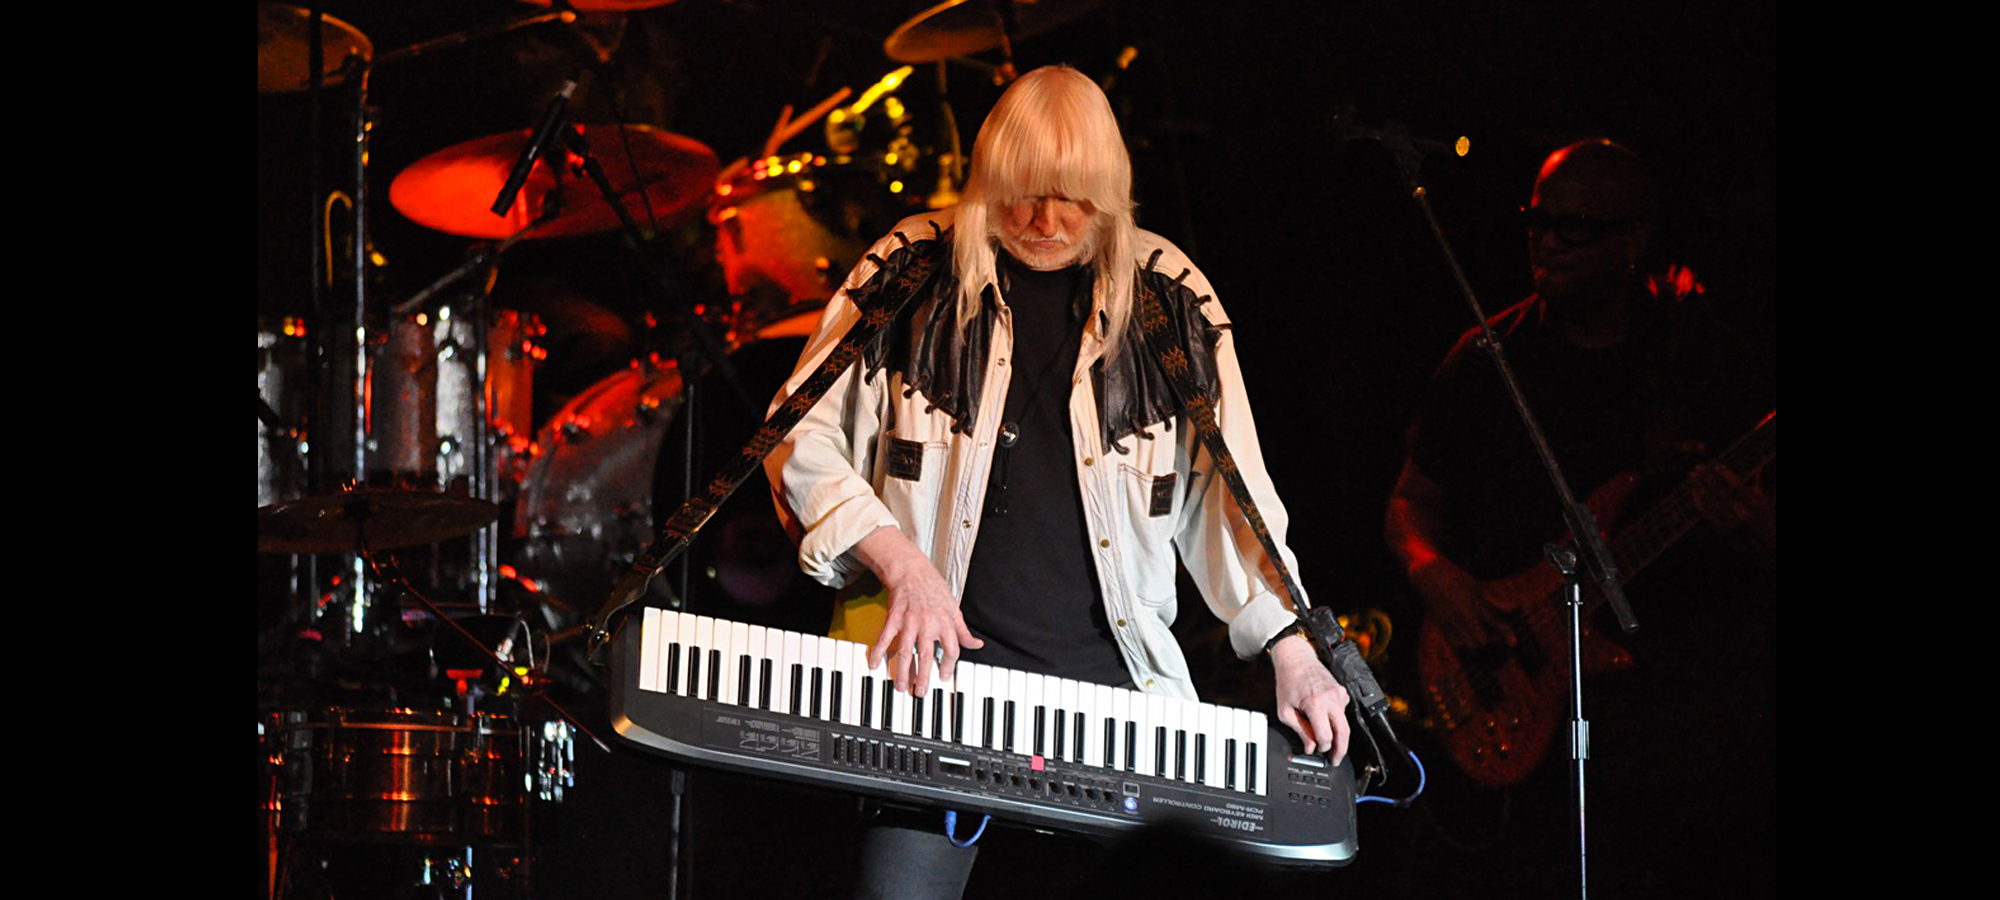 Edgar Winter.  HipQuotient.com